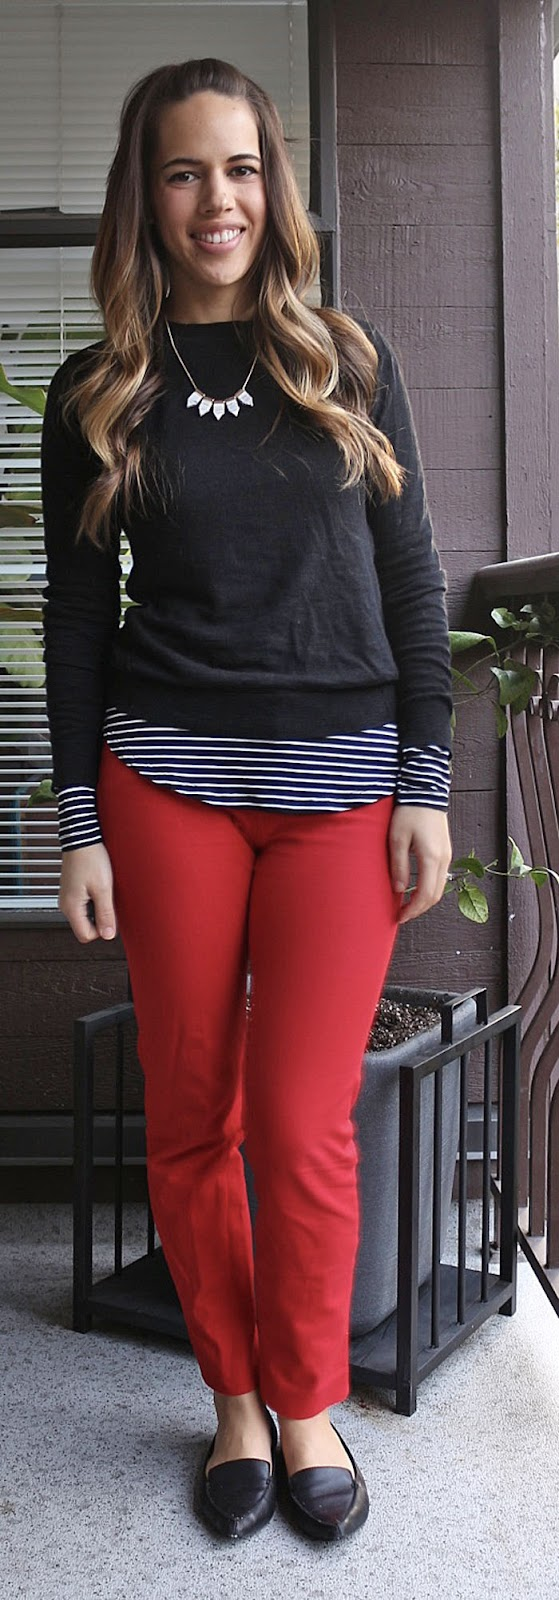 Jules in Flats - Old Navy Red Pixie Pants, Gap Sweater, Old Navy Perfect Layering Top